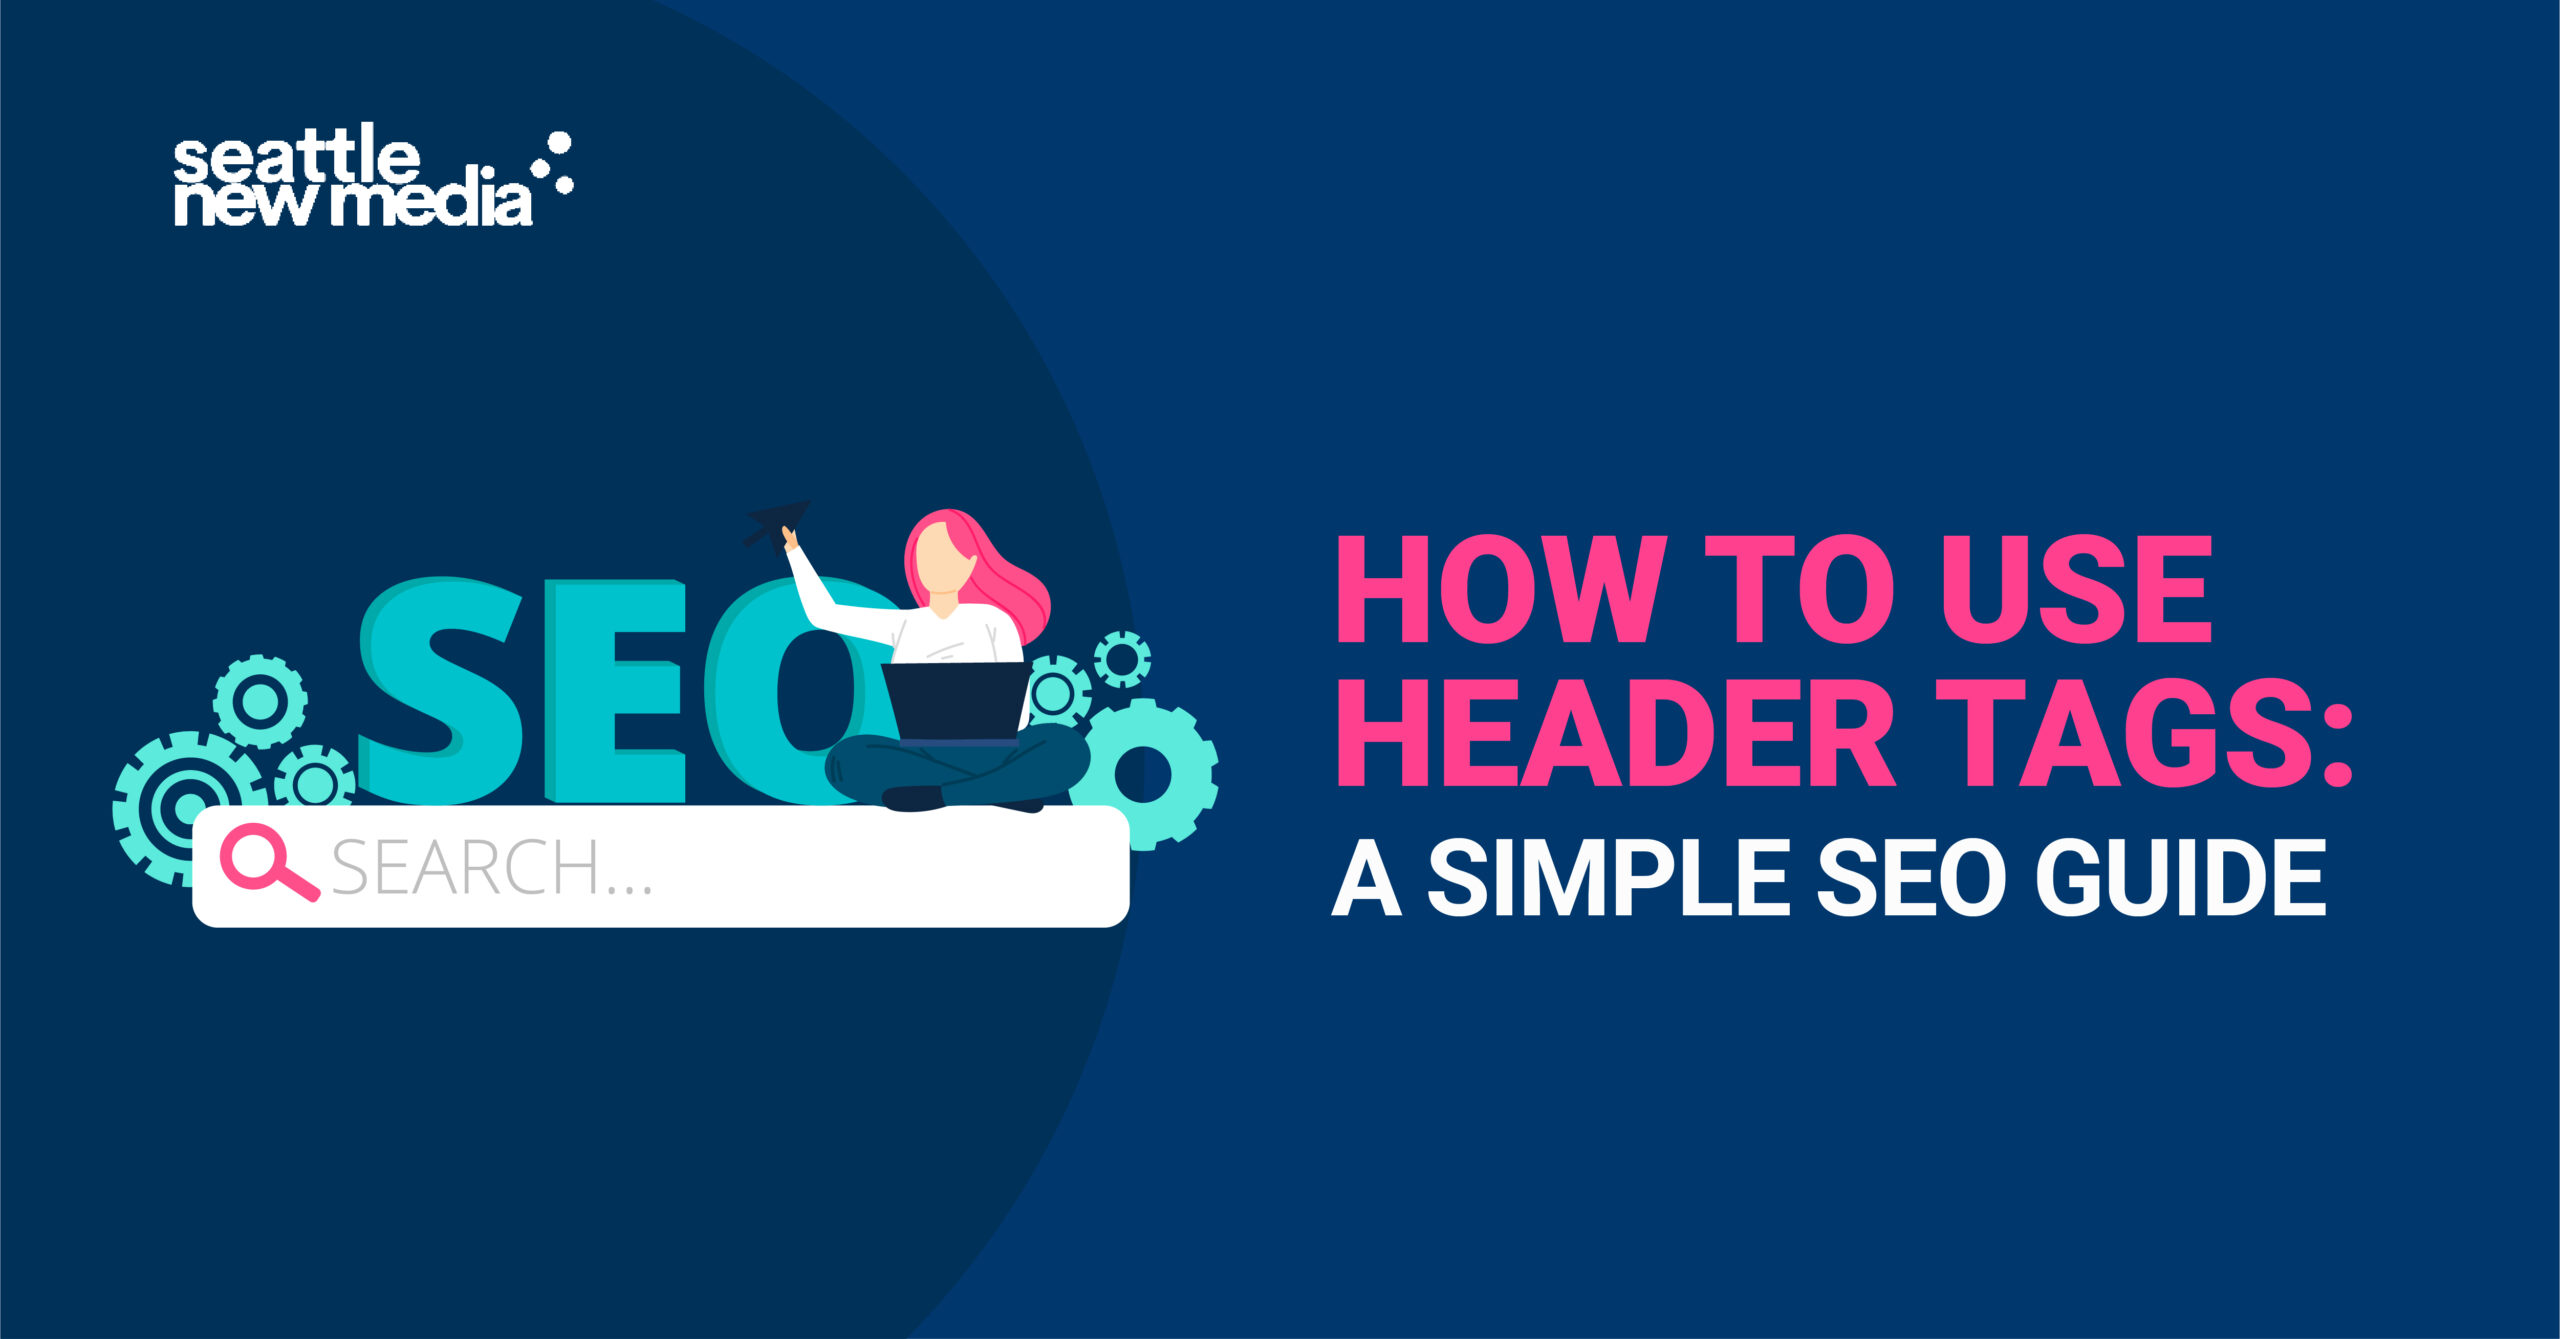 How to use header tags